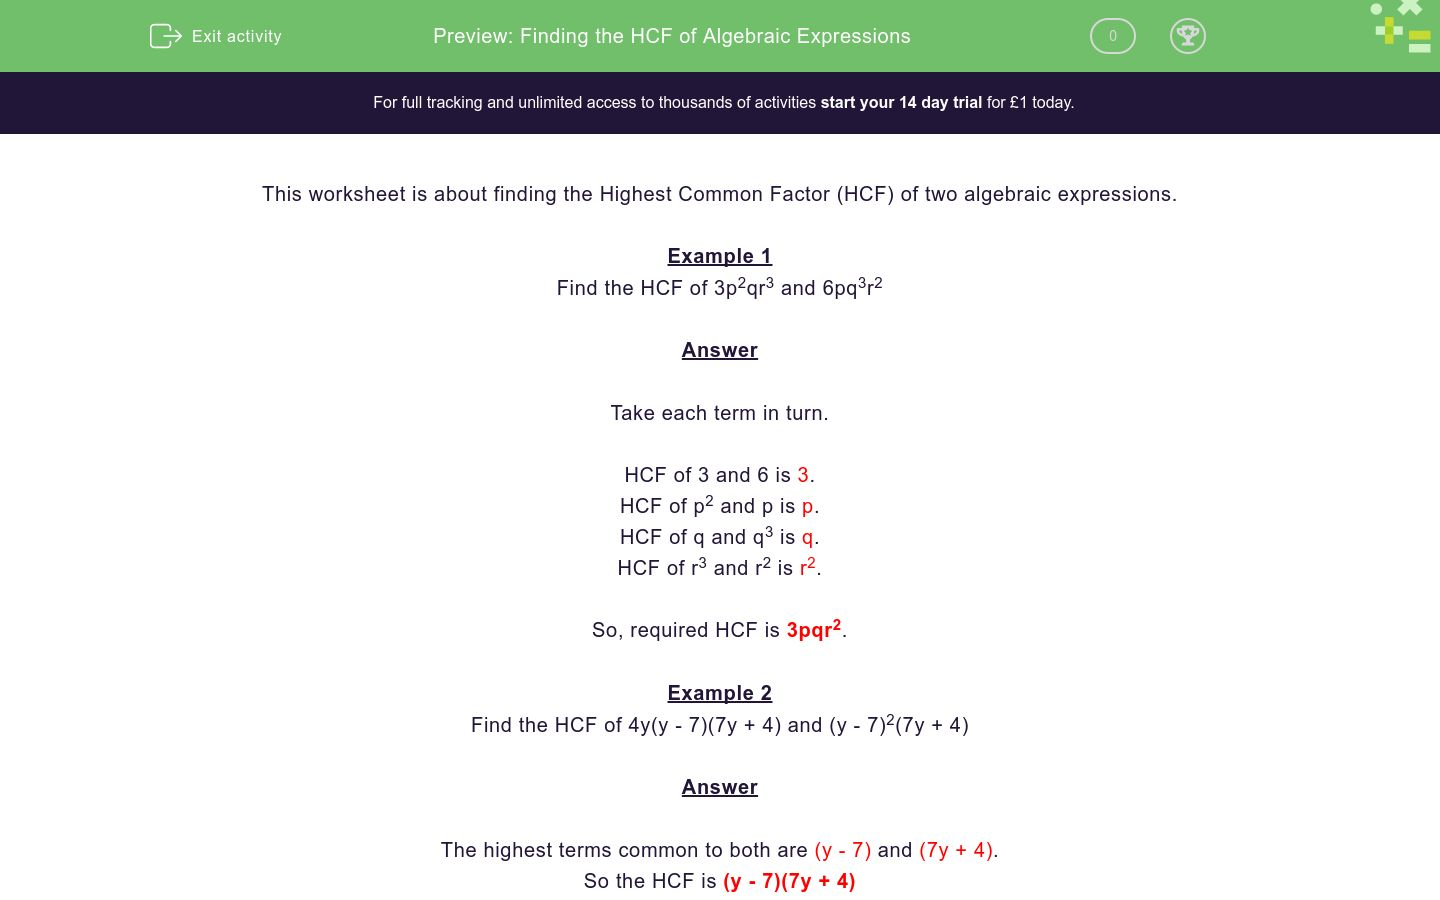 'Finding the HCF of Algebraic Expressions' worksheet